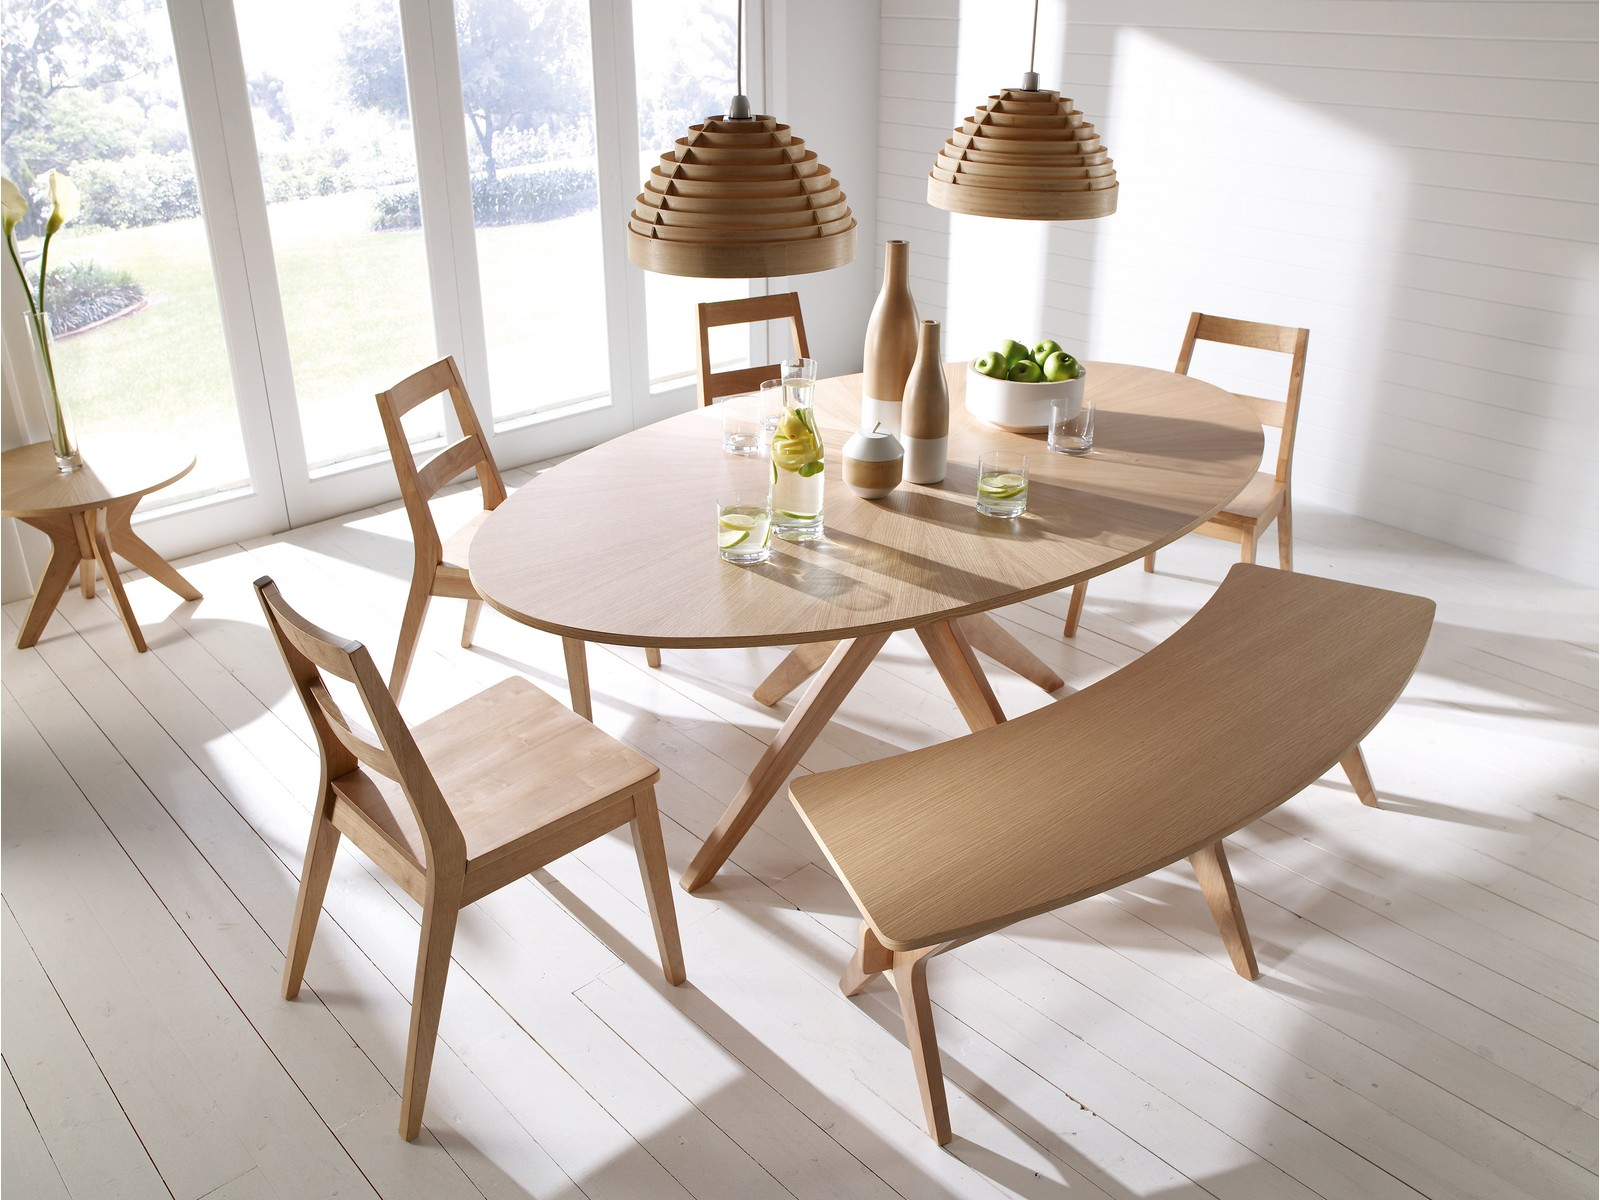 Malmo dining table set chairs bench oak veneer solid wood scandinavian style